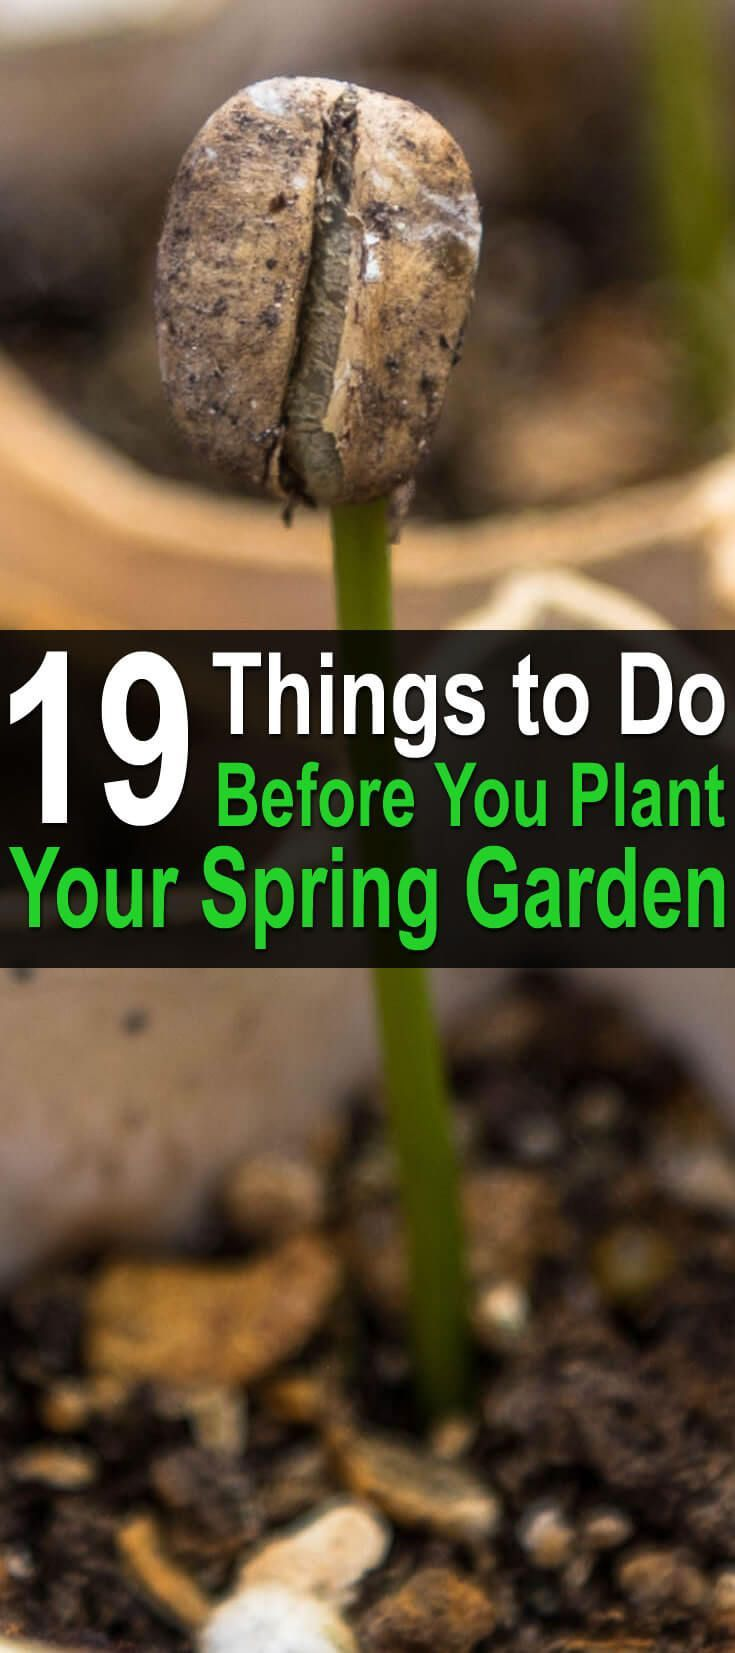 19 Things to Do Before You Plant Your Spring Garden SOTP